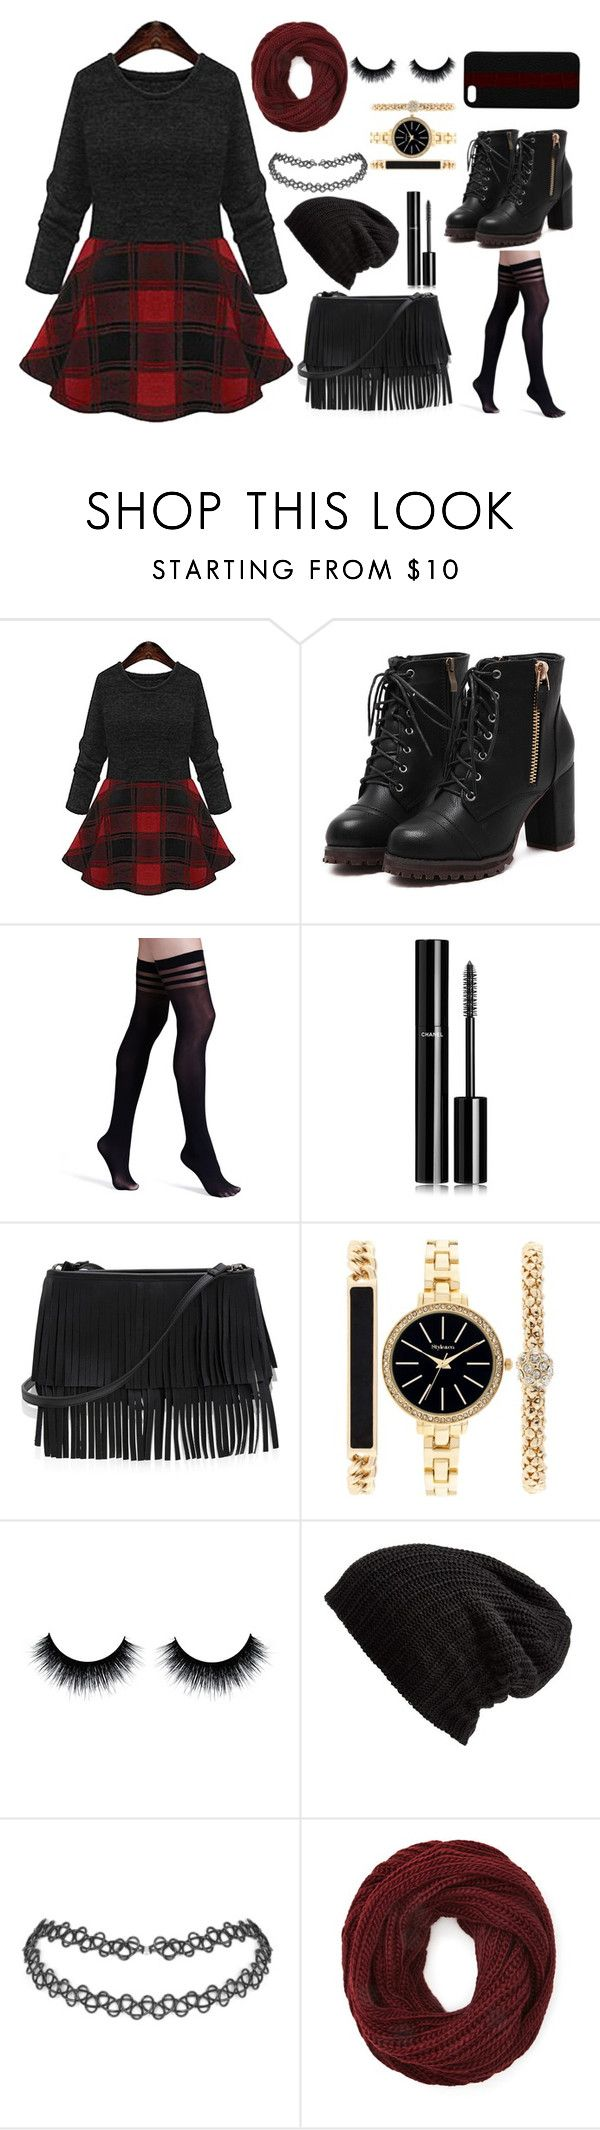 """""""red"""" by kovacslilla on Polyvore featuring Alice + Olivia, Chanel, White House Black Market, Style & Co., Free People, Forever 21 and Maison Takuya"""